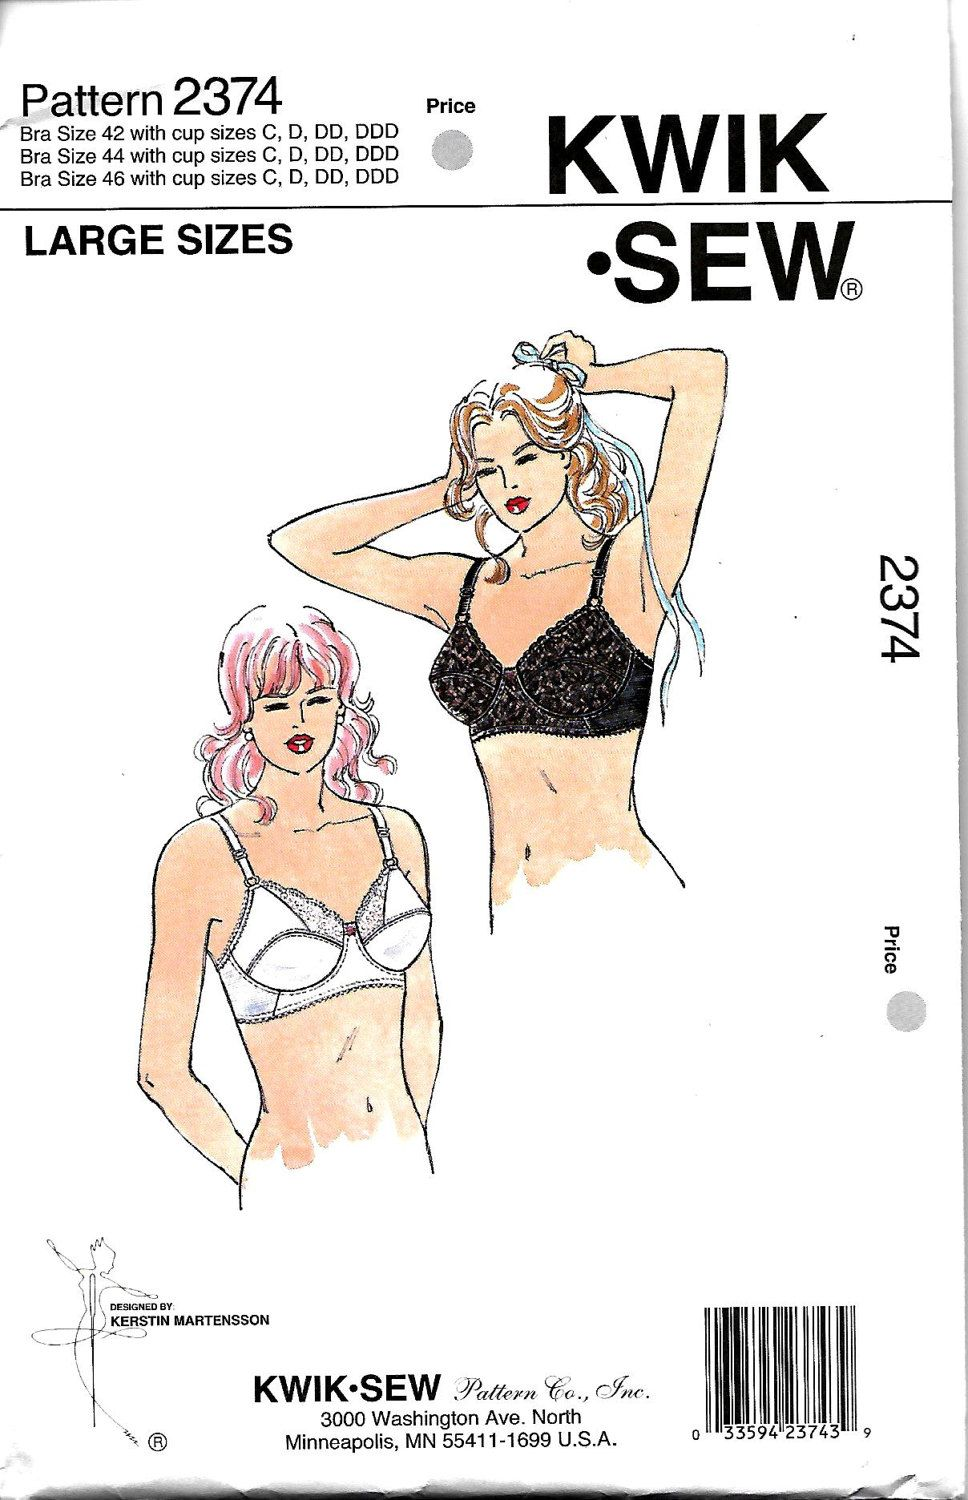 ae5317f83 Kwik Sew 2374 Misses Full Figure Bra Pattern